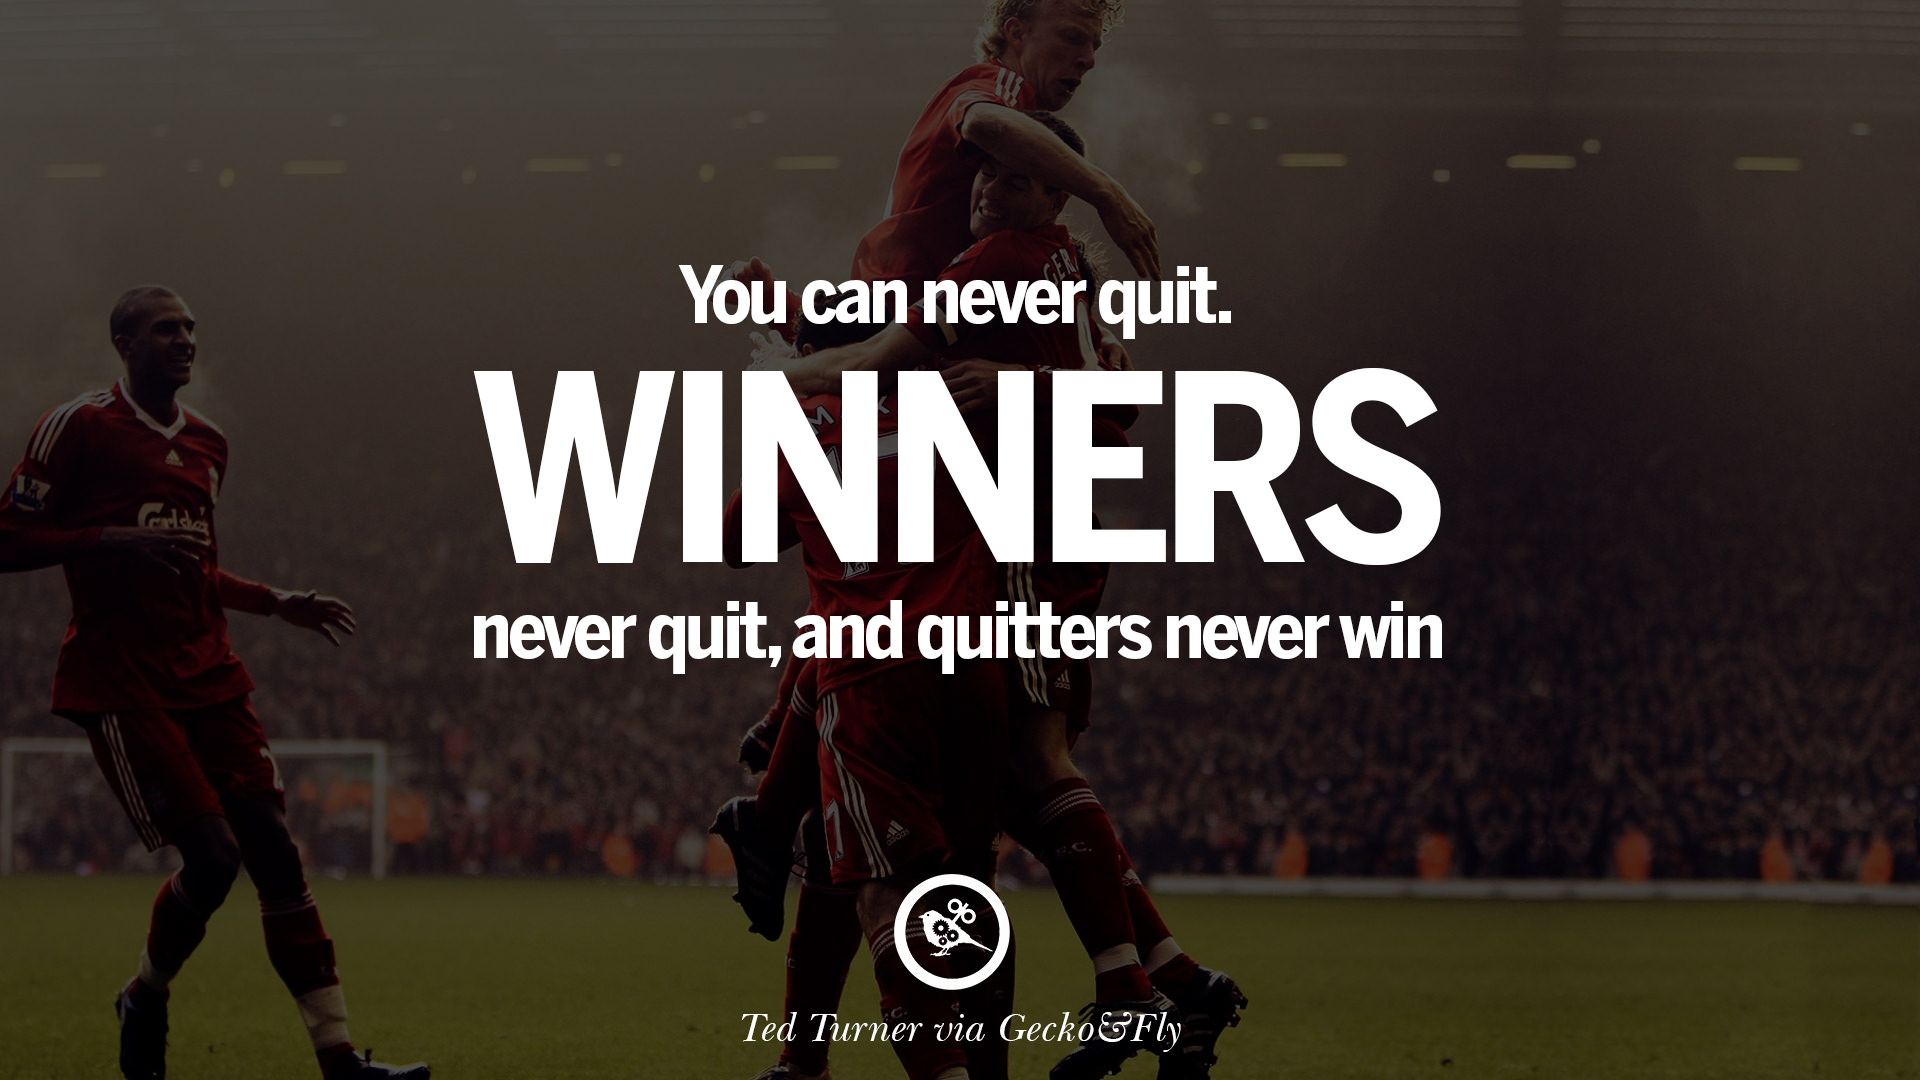 Sport Wallpaper Life: 38 Motivating Posters When You Are About To Give Up